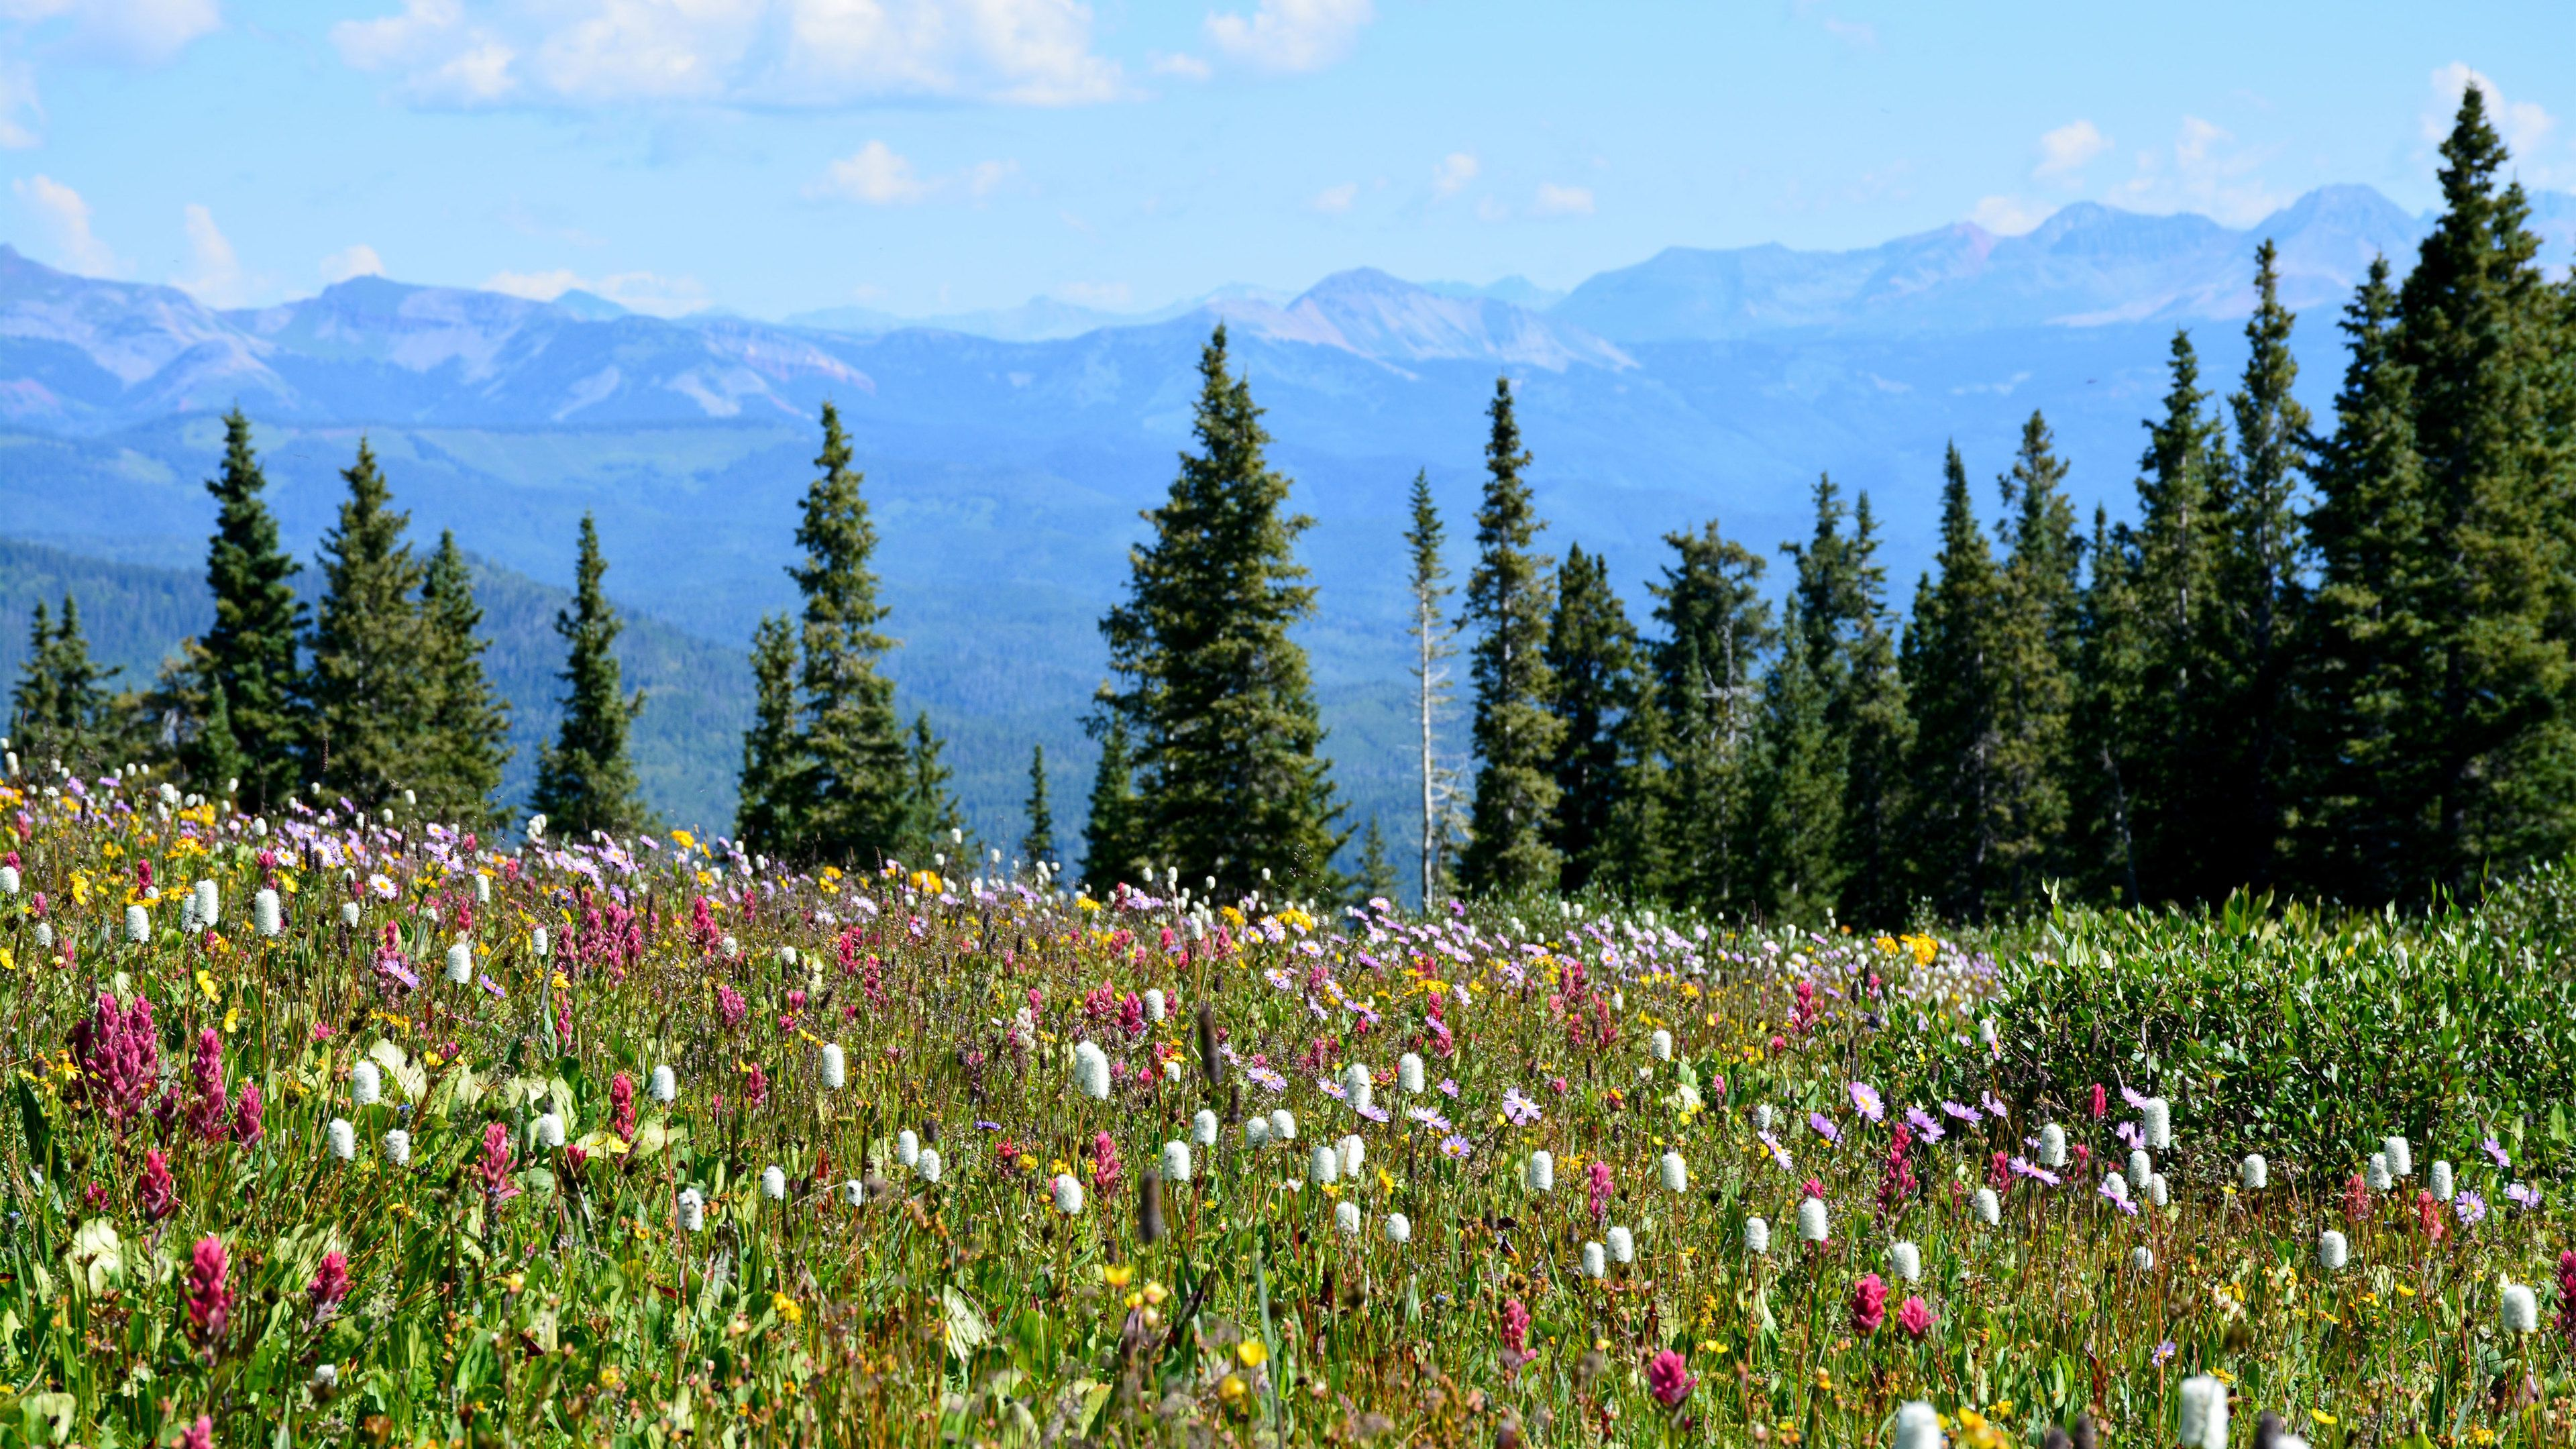 Field of wild flowers with trees and mountains in the distance